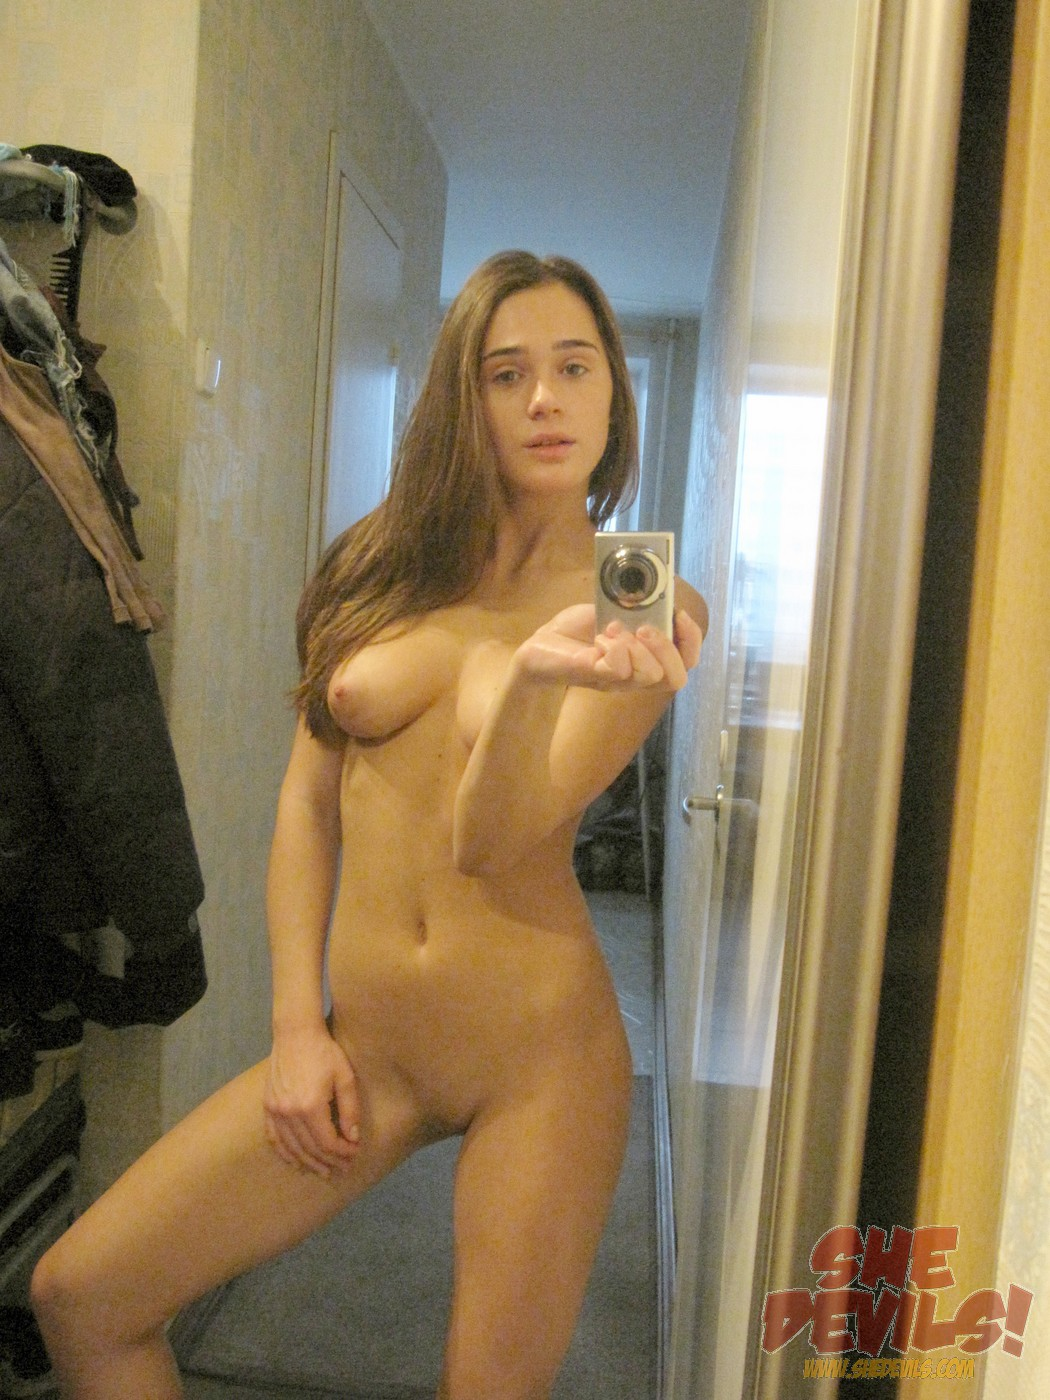 Free pics of young naked girls in the mirror think, that